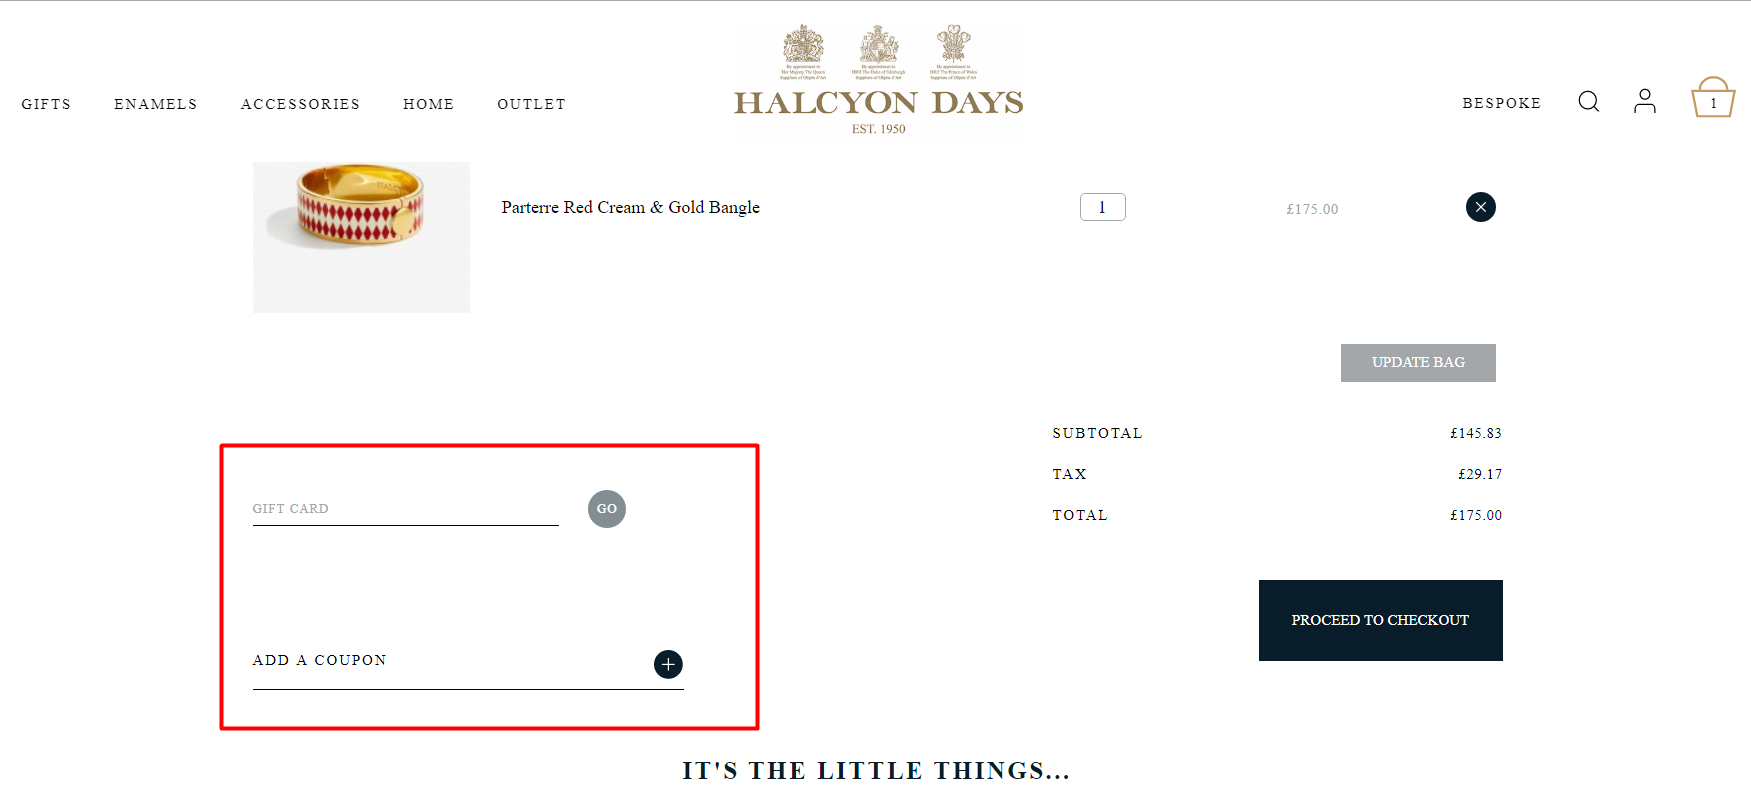 How do I use my Halcyon Days discount code?